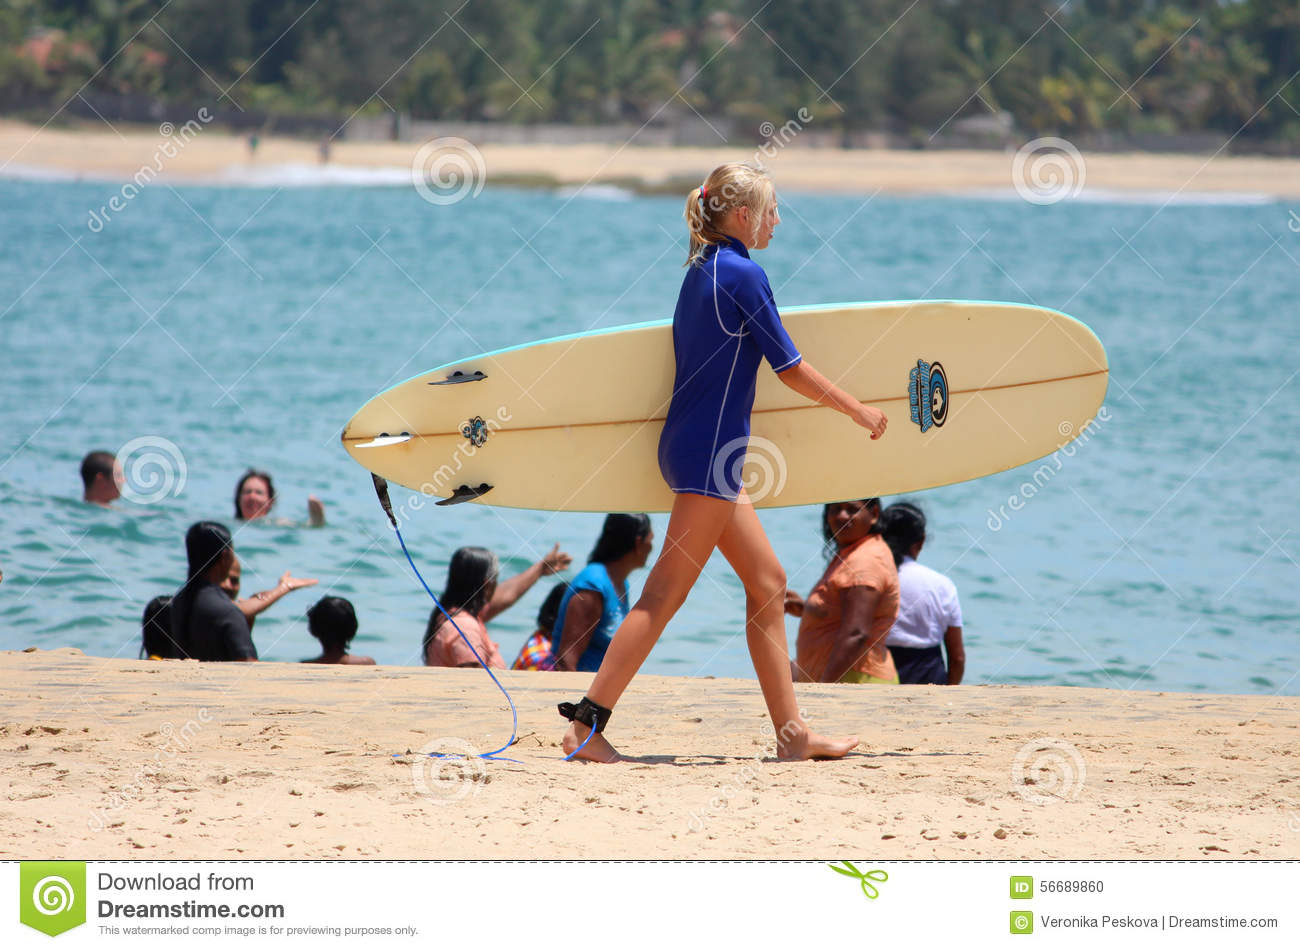 ARUGAM BAY, 12 AUGUST: Young Girl Goes Surfing Editorial Image.